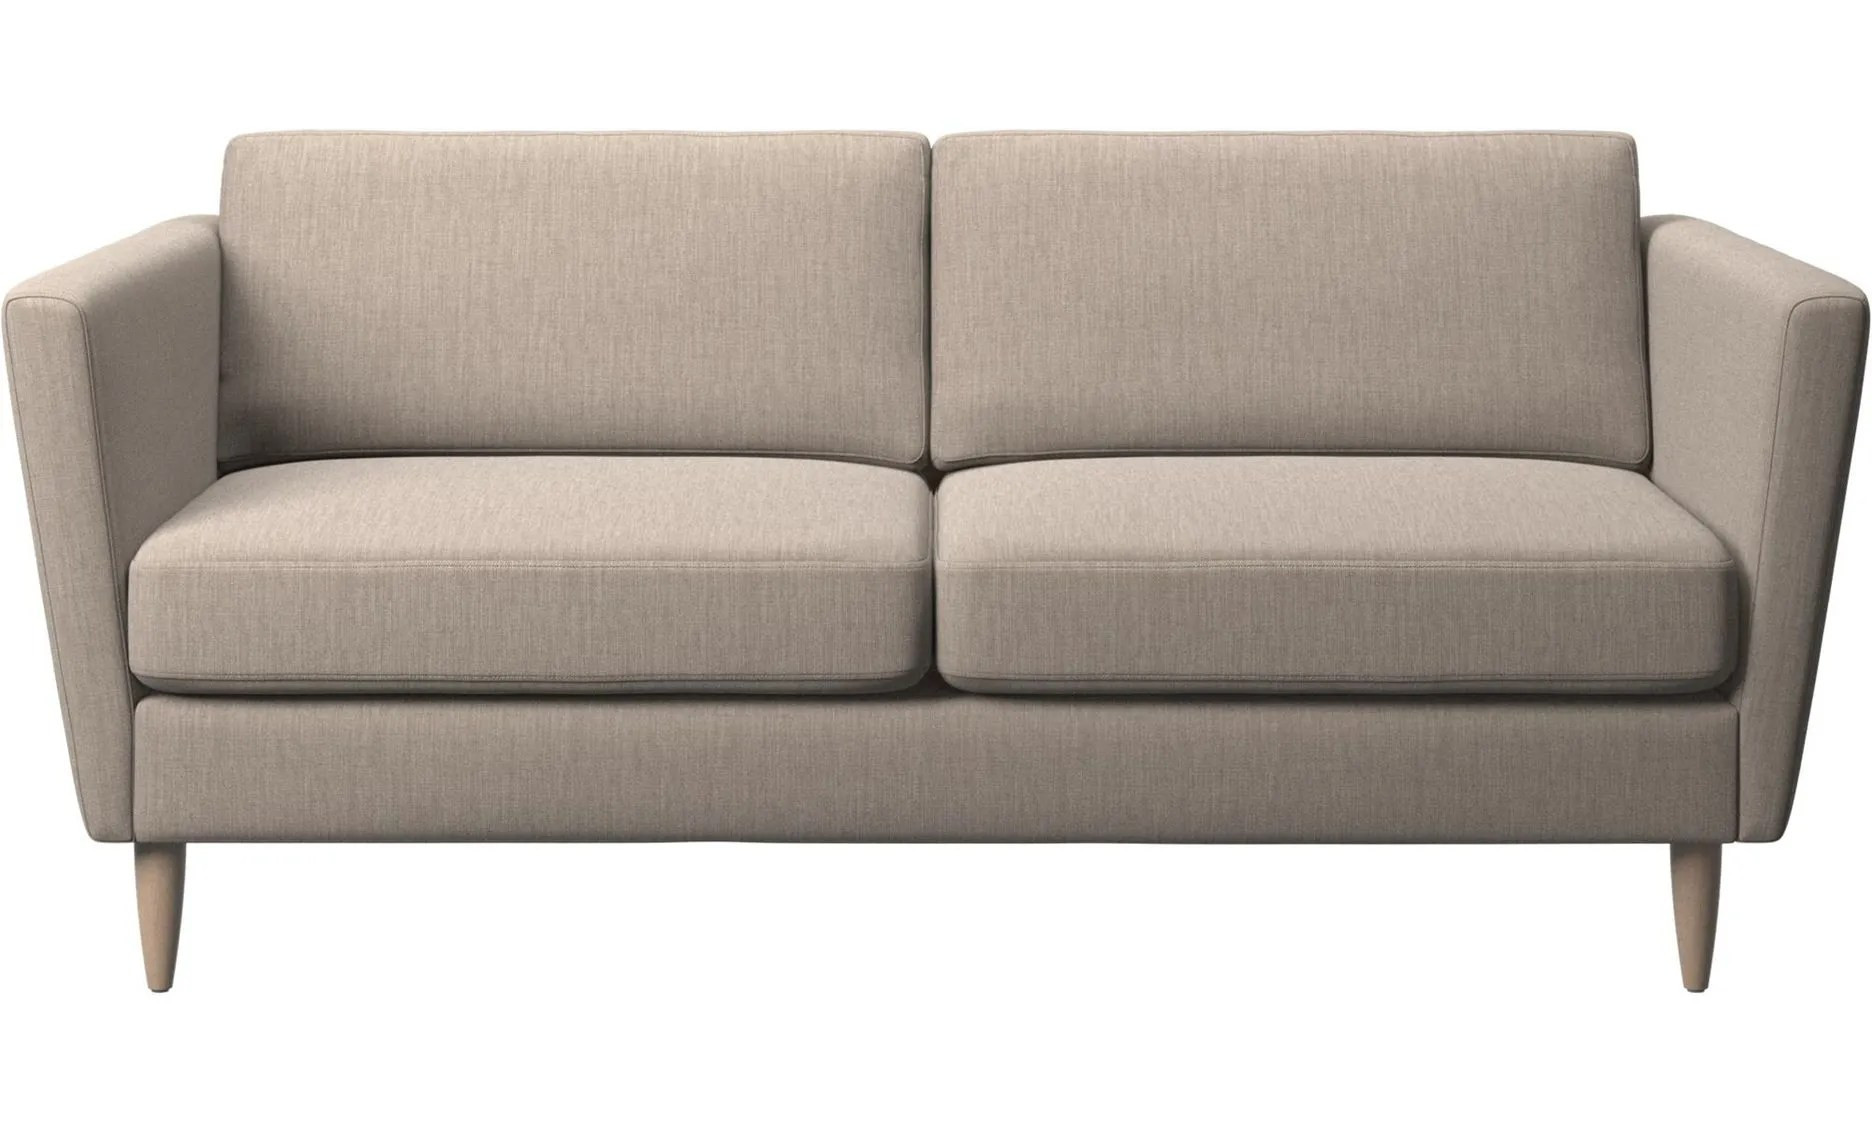 The Best Affordable Sofas That Don T Look Like Affordable